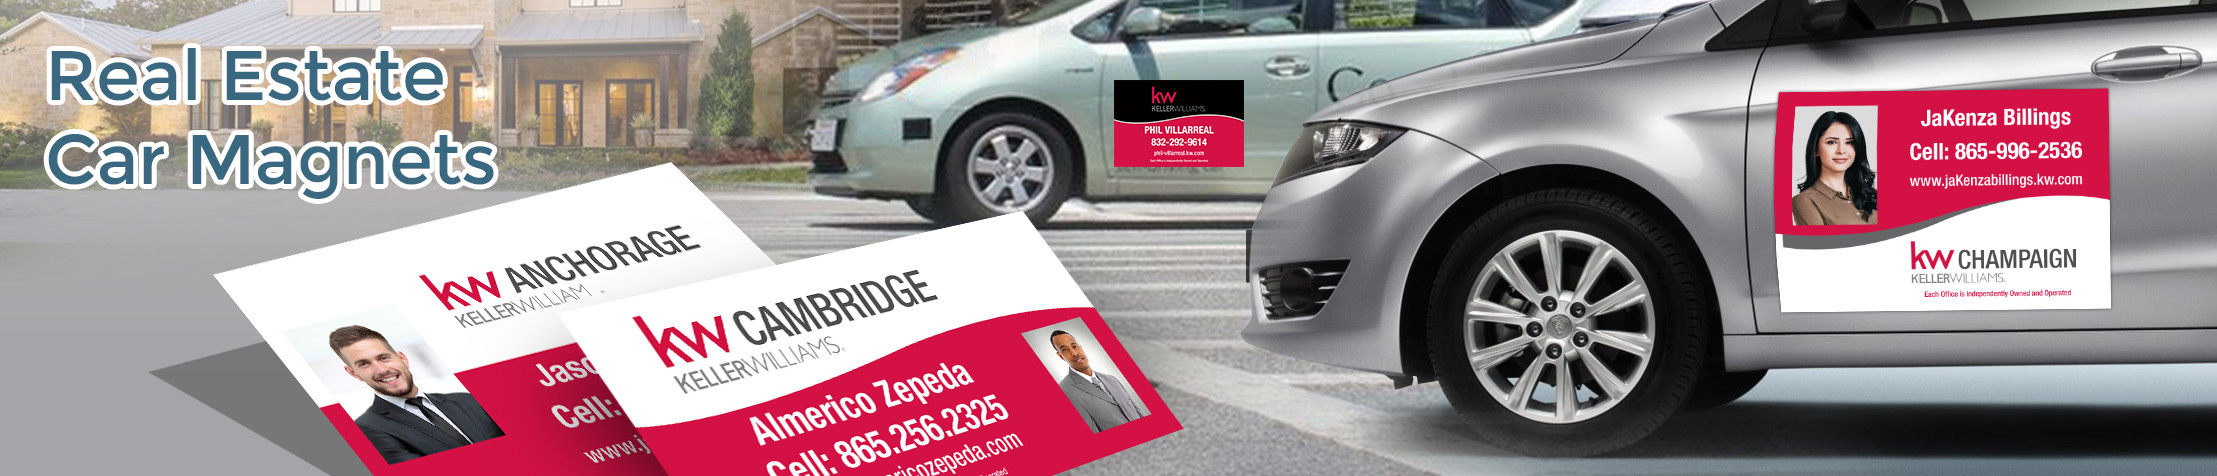 Keller Williams Real Estate Car Magnets - KW approved vendor custom car magnets for realtors, with or without photo | BestPrintBuy.com